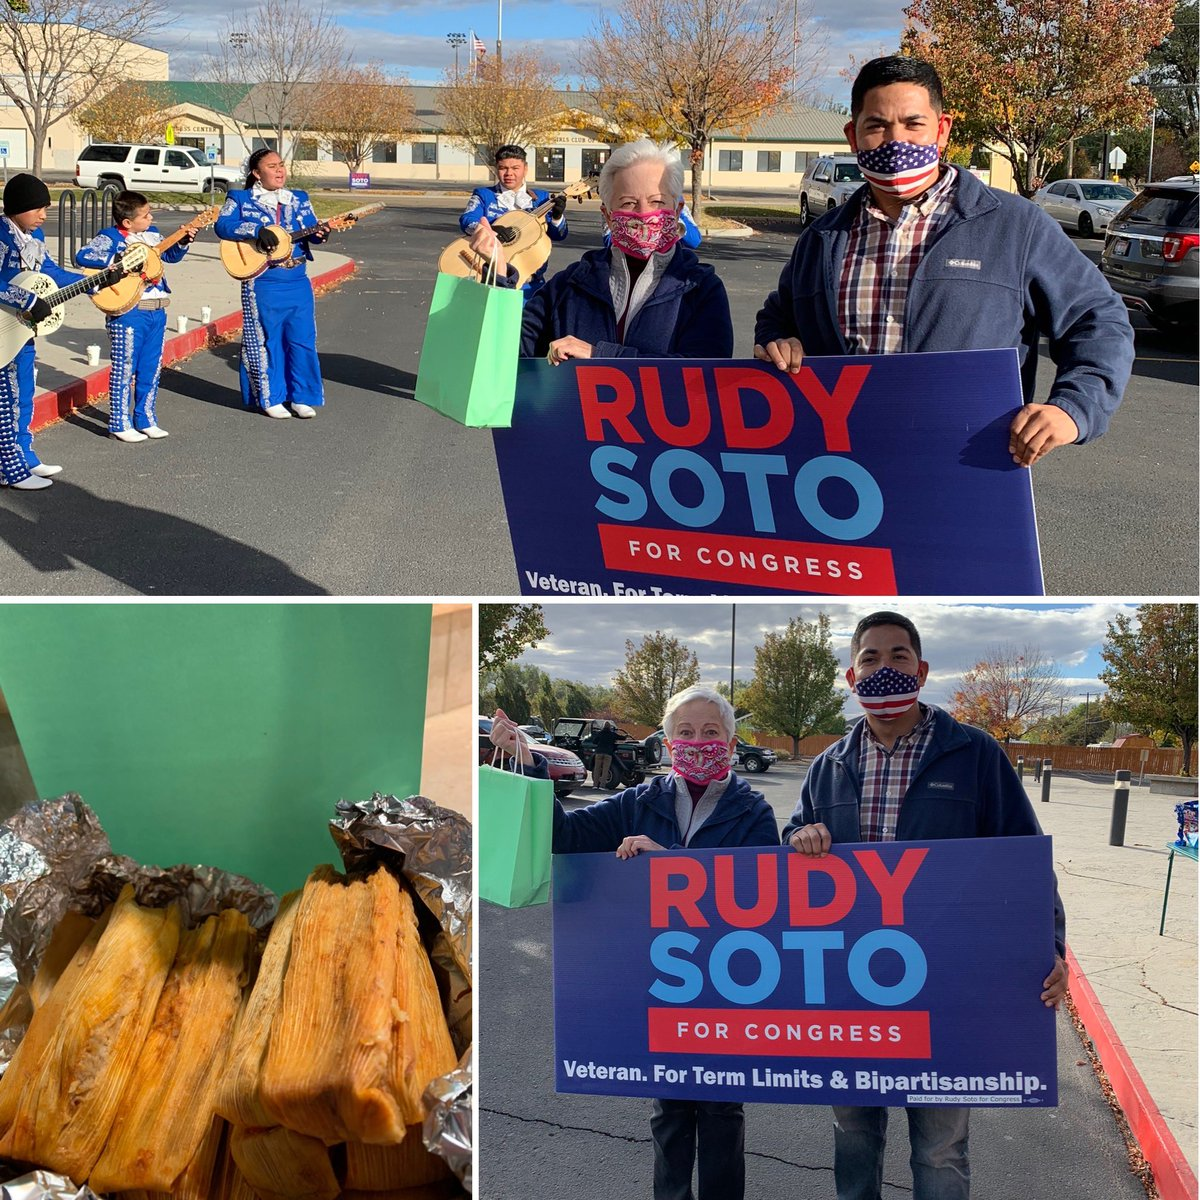 La fiesta hosted by Rudy Soto #Nampa Hispanic Cultural Center. ¡Tamales ... muy delicioso! #LatinoVote  Watch for upcoming events in #Idaho & plz RT #10DAYS #idpol  #Vote for Rudy Soto #id01  ##Vote for a #veteran 🇺🇸 https://t.co/1aURPfBkYU